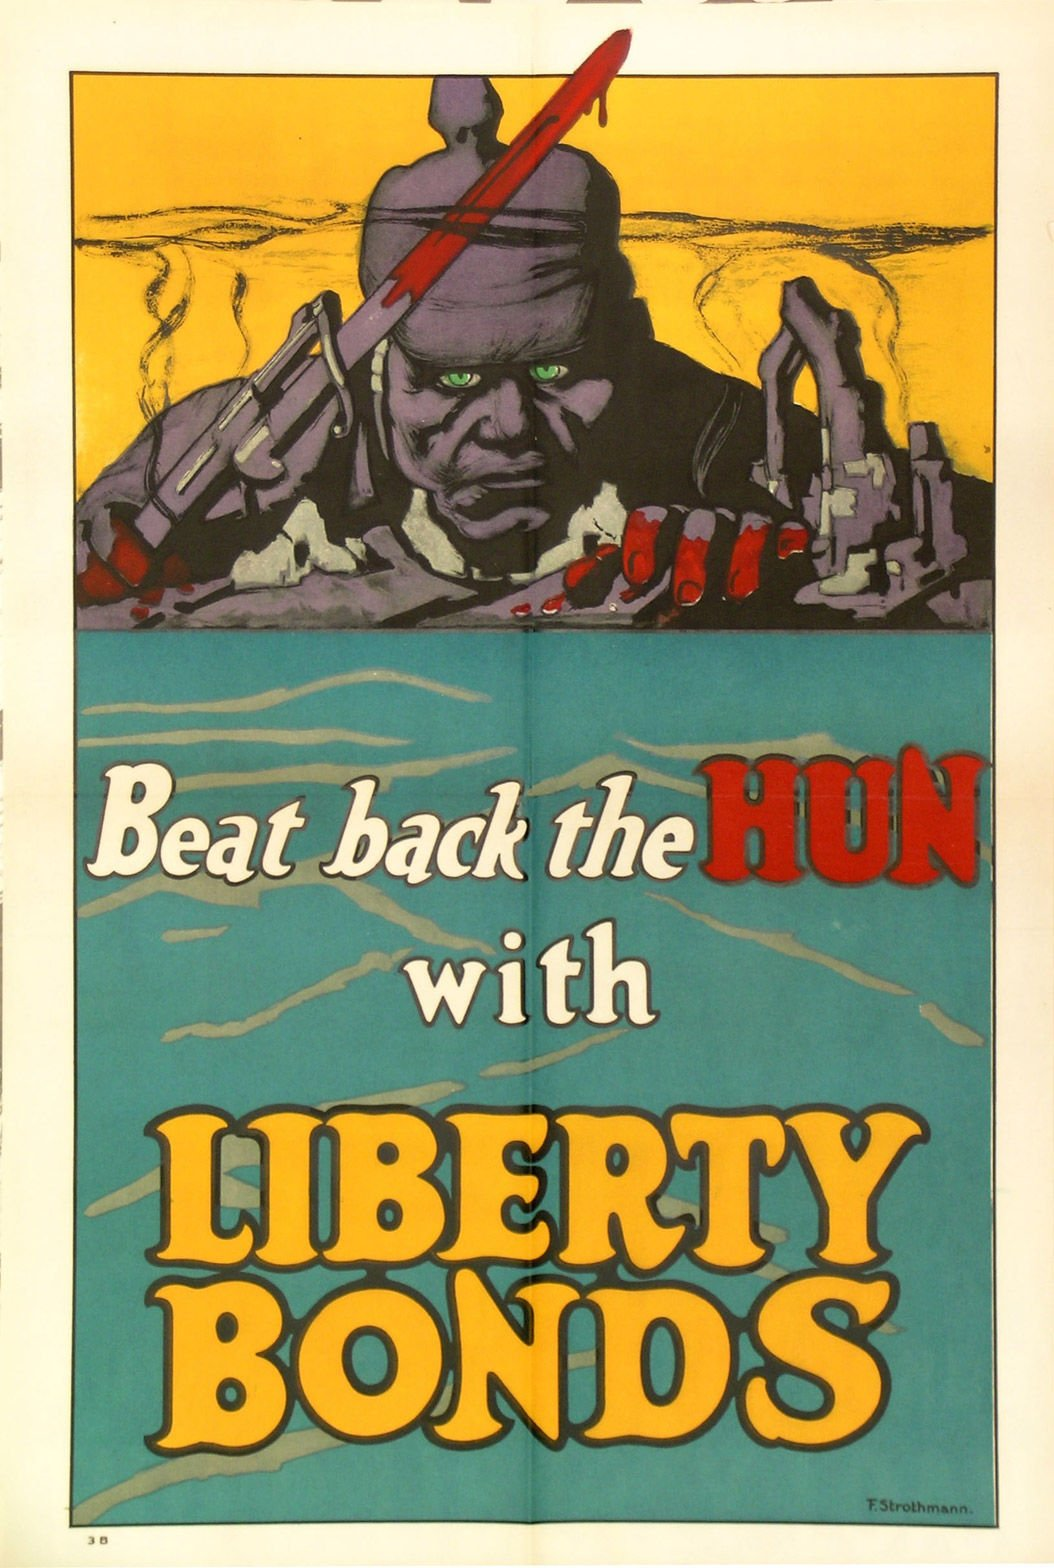 Liberty bonds poster